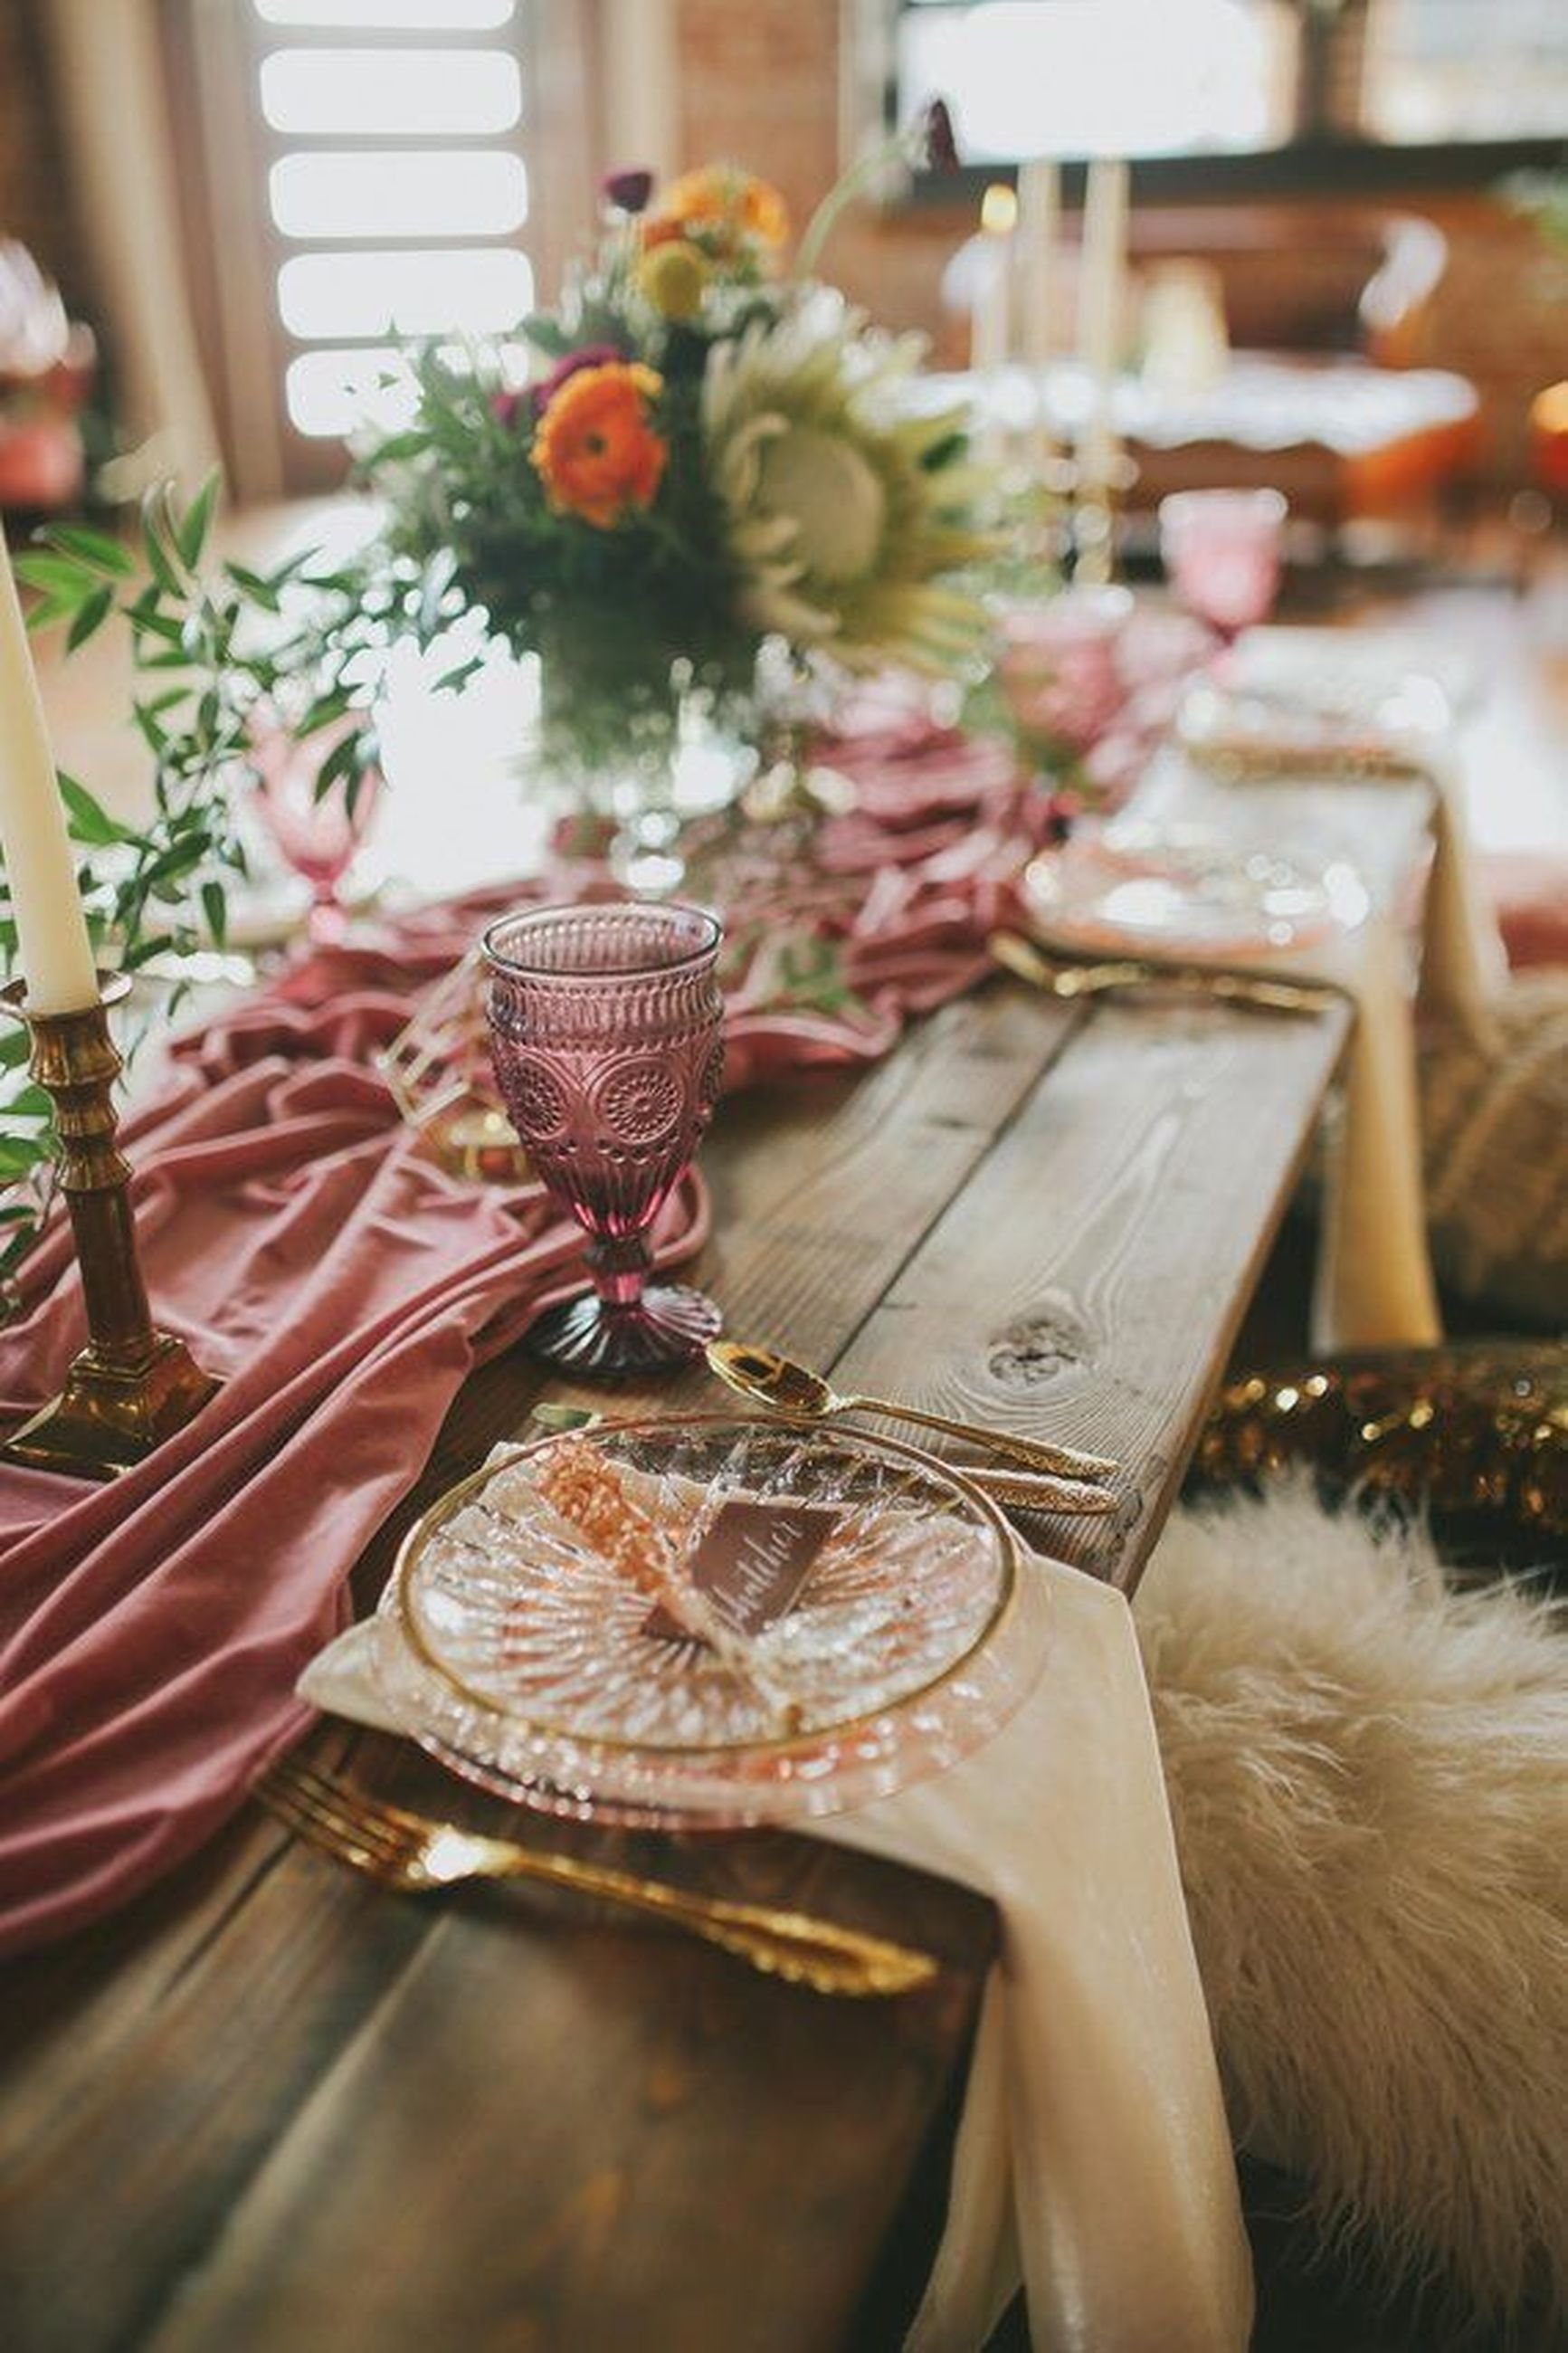 table, flower, indoors, flowering plant, plant, chair, no people, selective focus, freshness, seat, food and drink, furniture, dining table, absence, food, close-up, plate, glass, vase, nature, setting, crockery, flower arrangement, tea cup